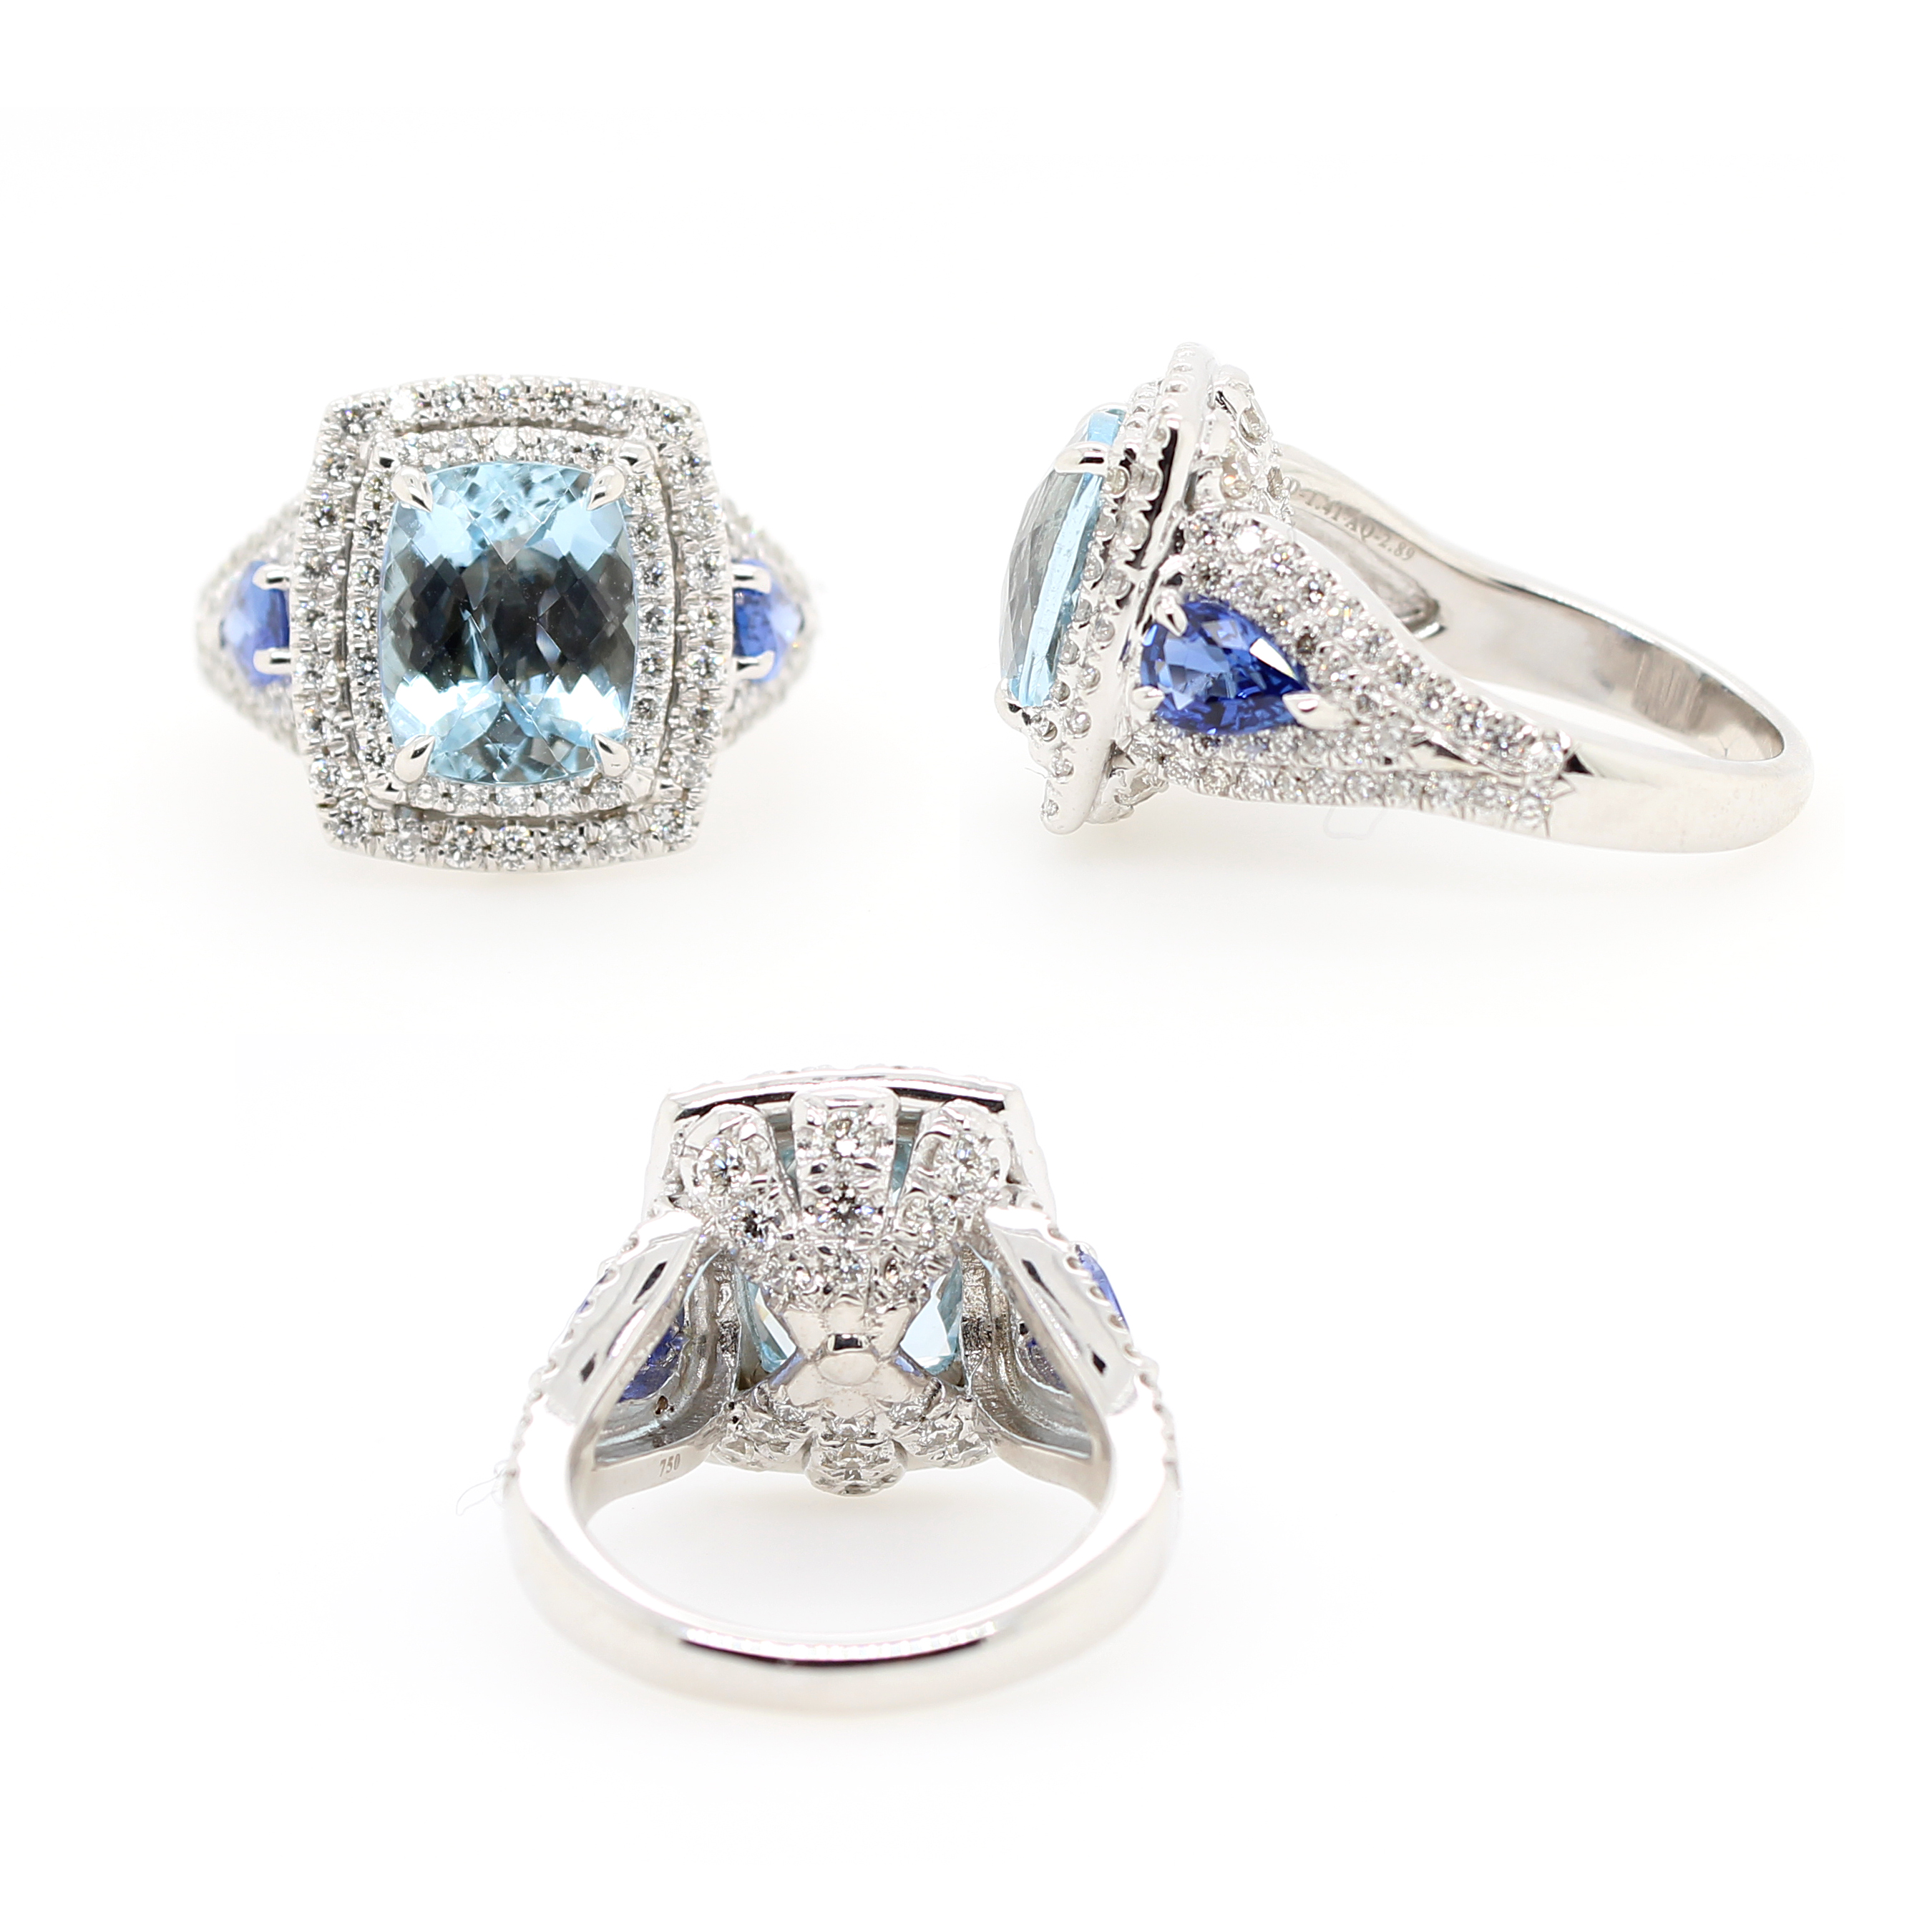 Charles Krypell 18 Karat White Gold Aquamarine, Blue Sapphire and Diamond Ring